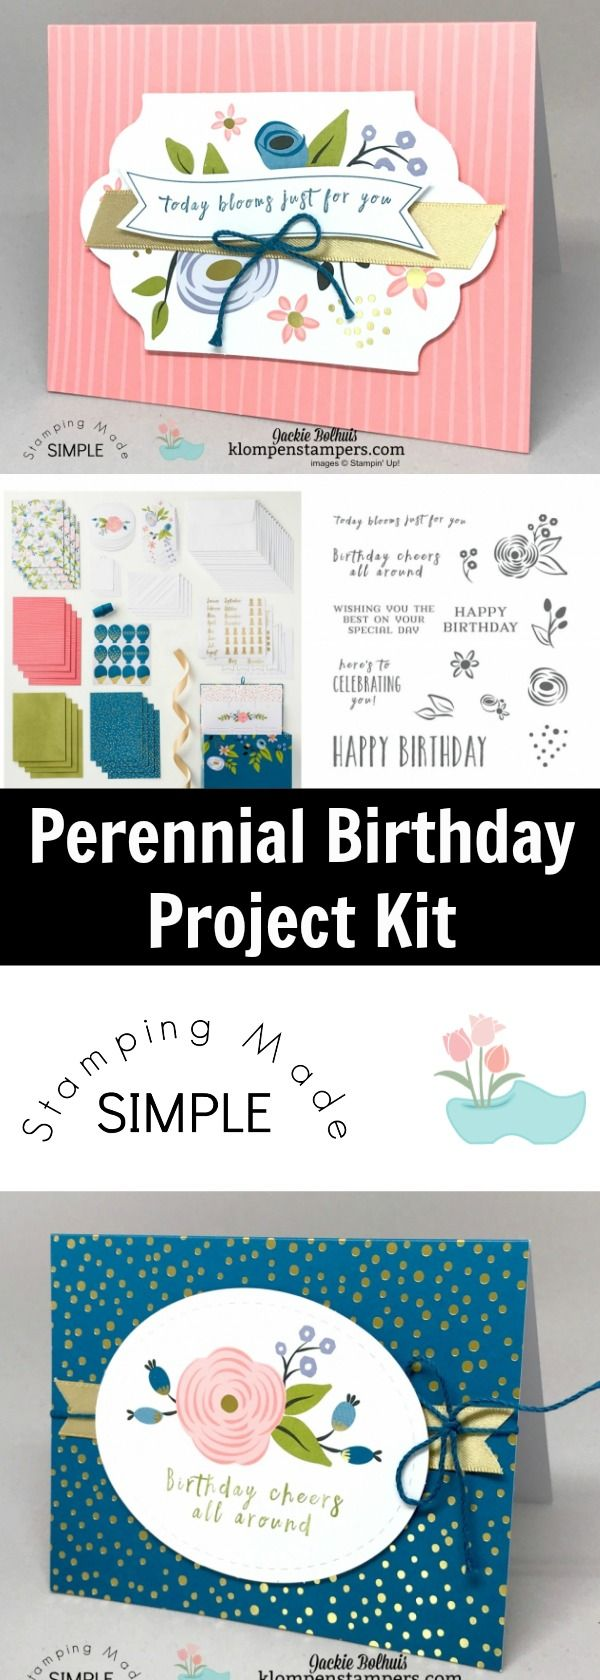 Make 16 Easy And Fun Birthday Cards With The Perennial Birthday Kit